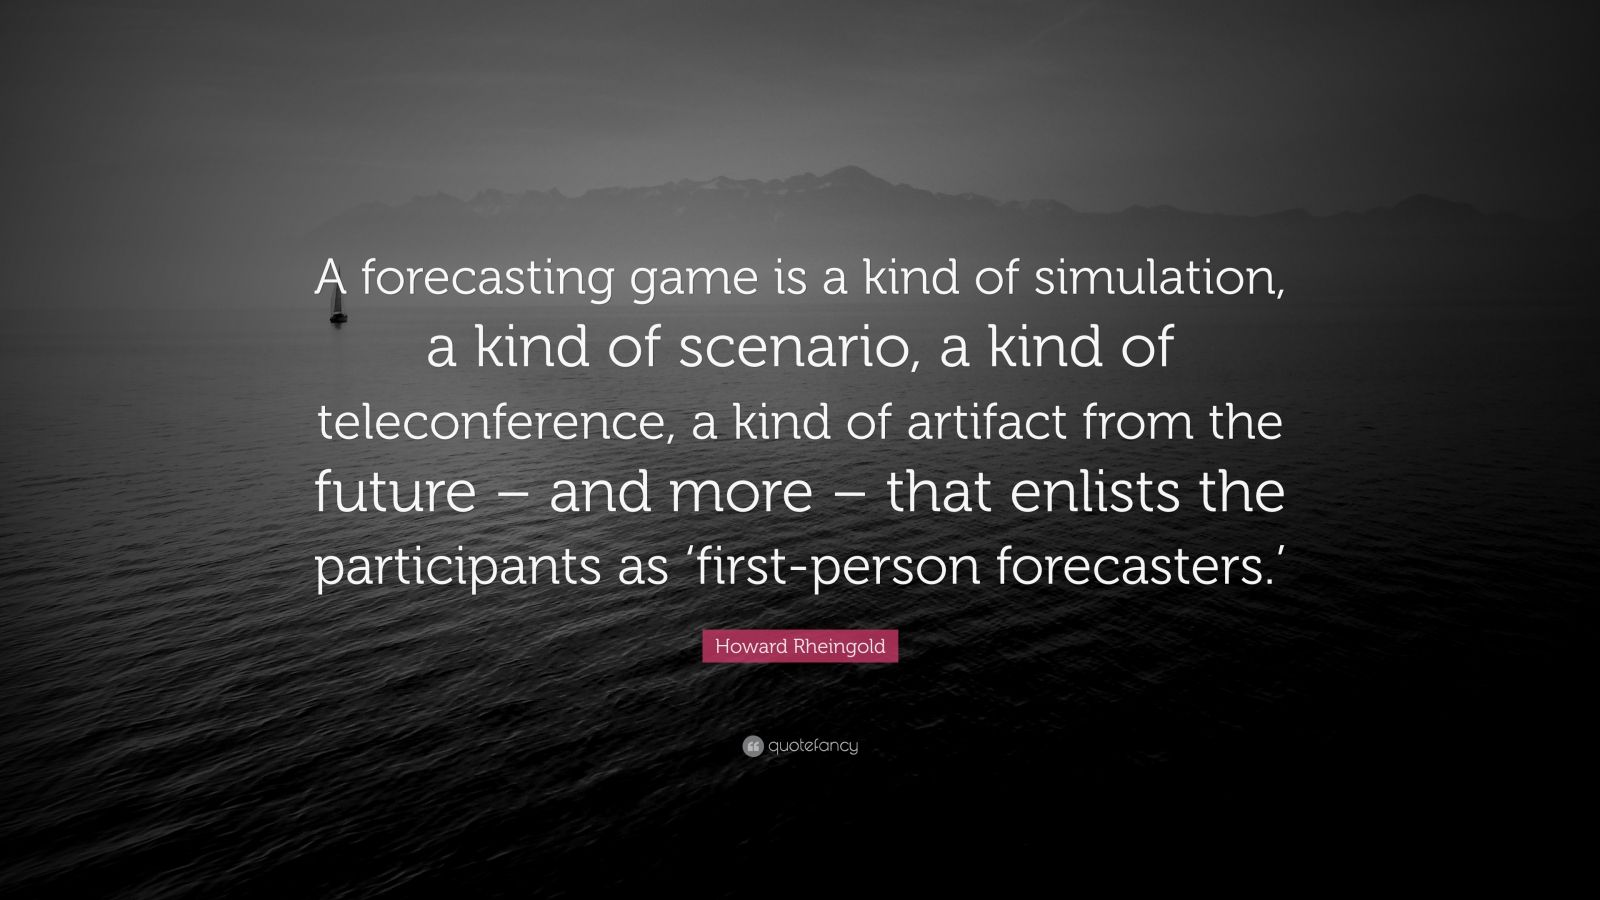 "Howard Rheingold Quote: ""A forecasting game is a kind of simulation, a kind of scenario, a kind of teleconference, a kind of artifact from the future – and more – that enlists the participants as 'first-person forecasters.'"""